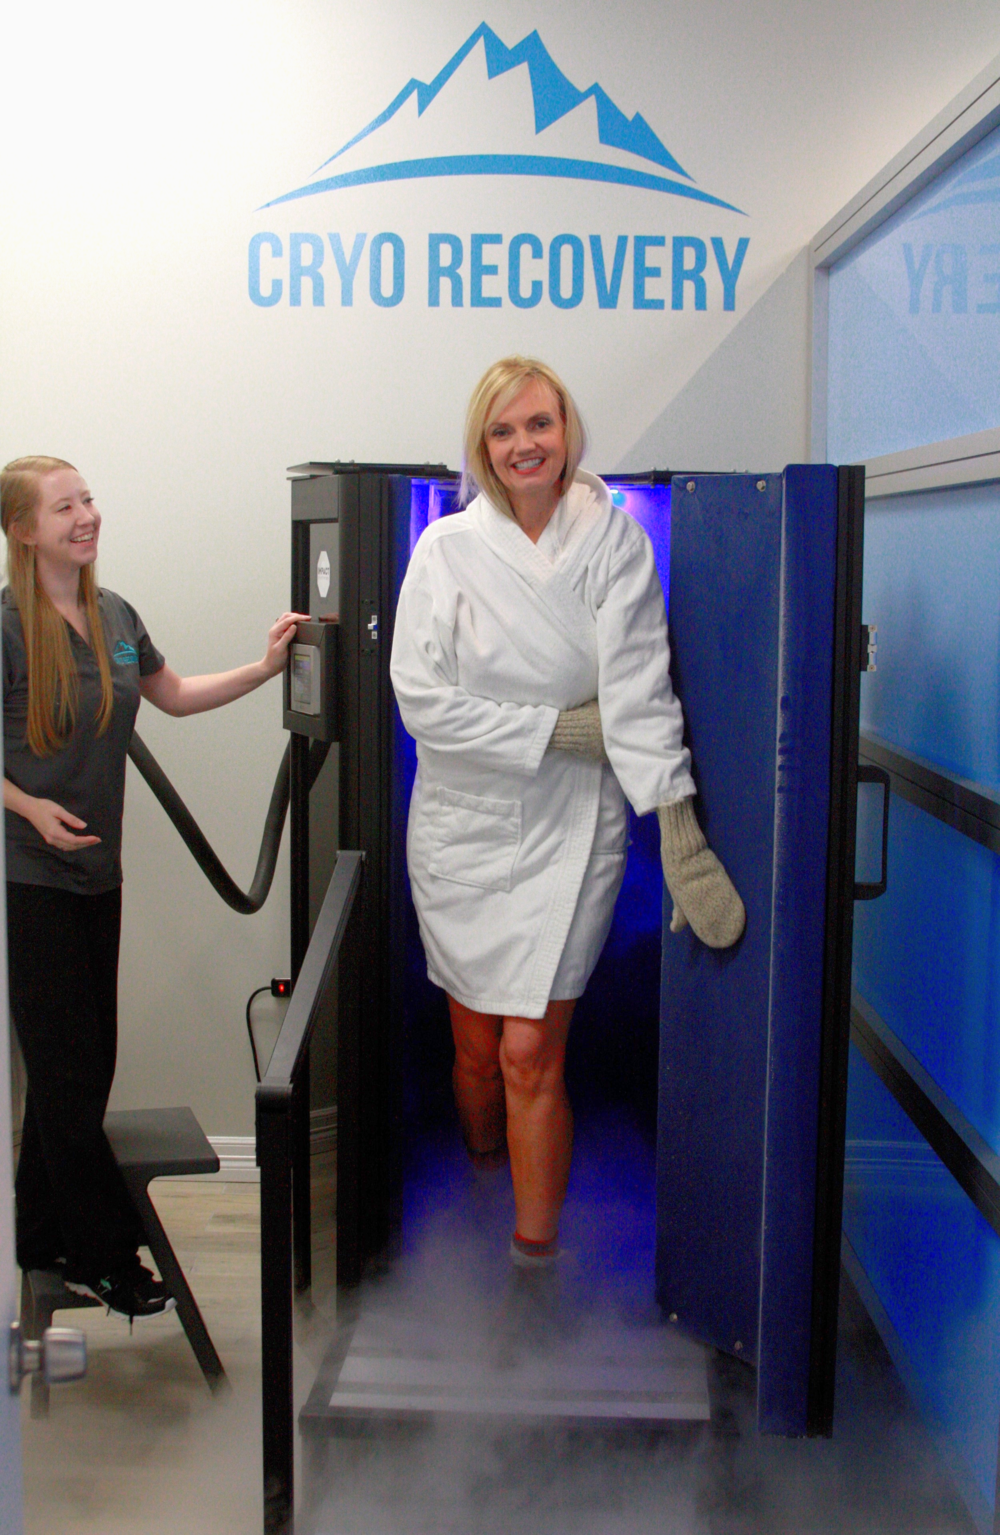 Houston Cryotherapy spa | Cryo Recovery